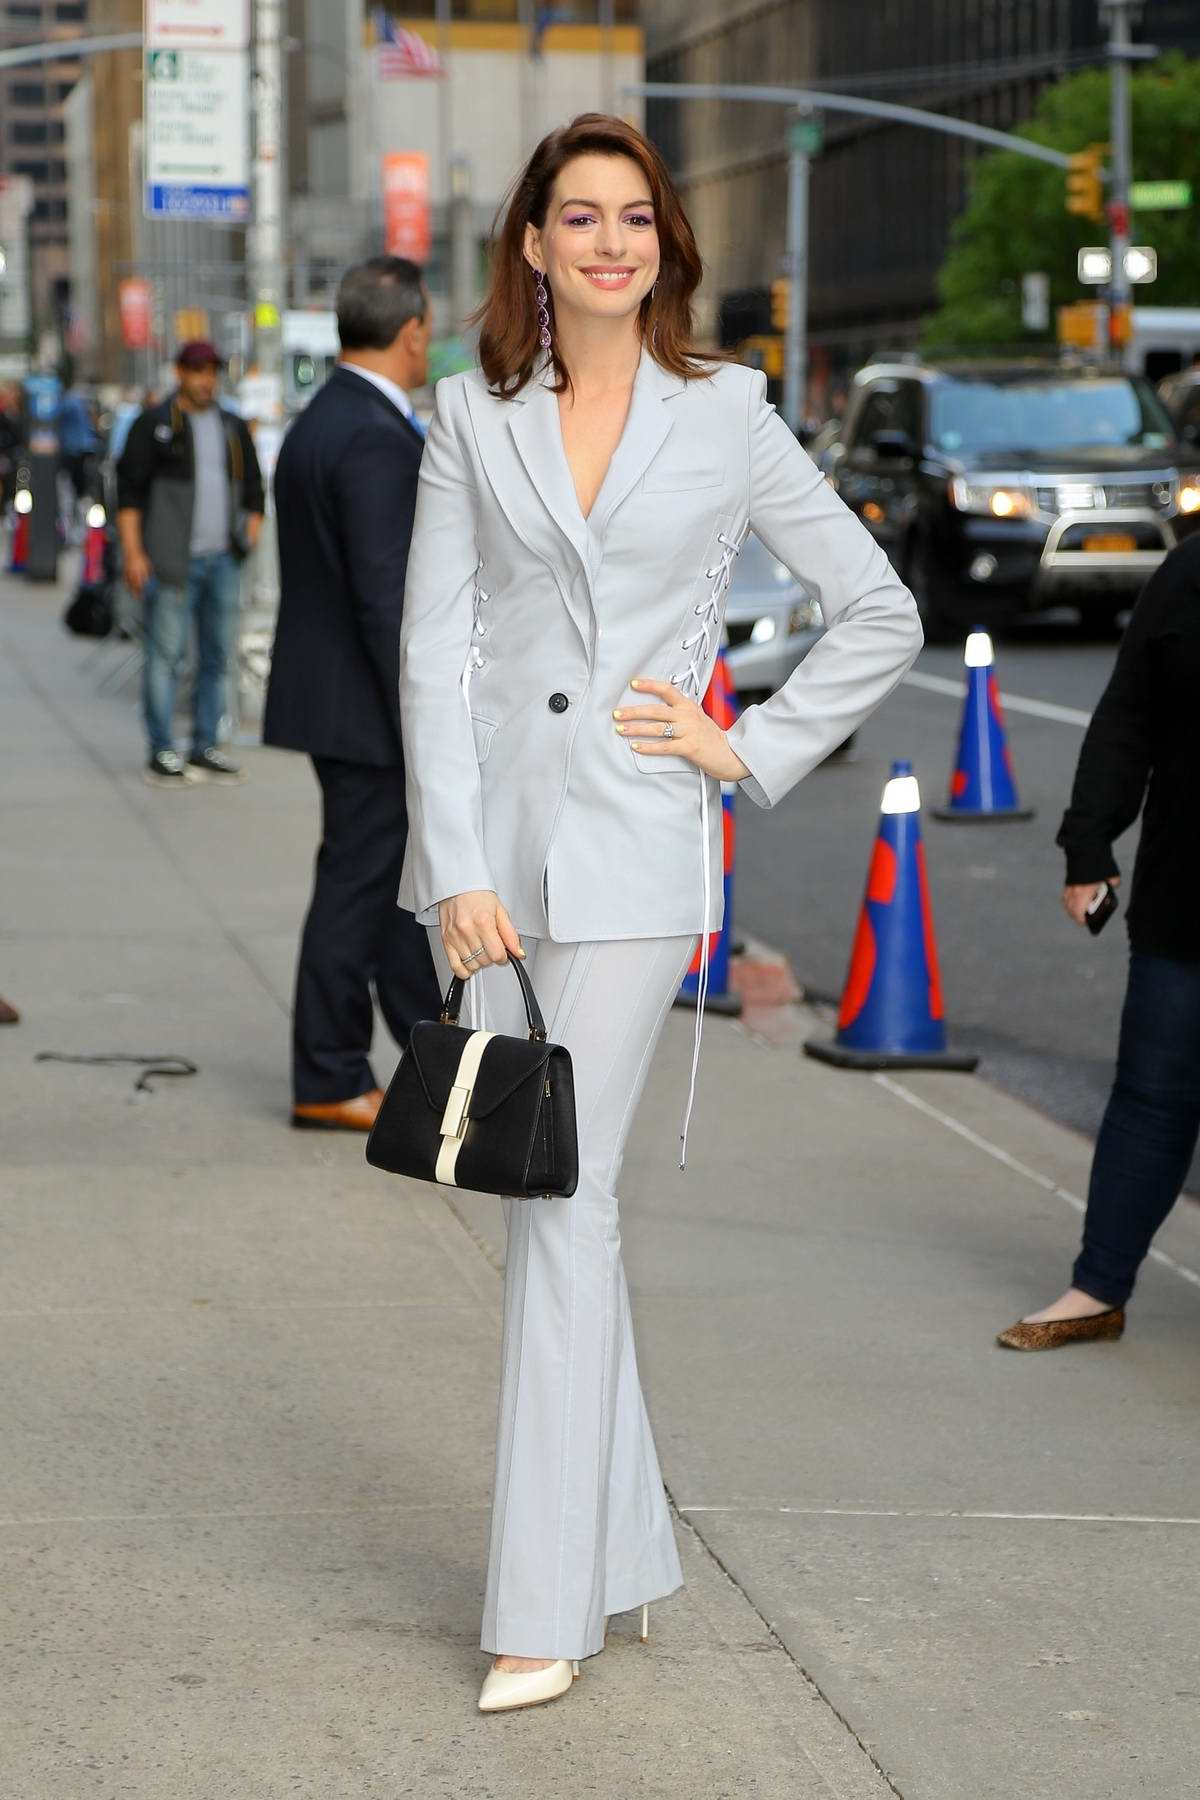 Anne Hathaway looks amazing in a pastel blue suit as she arrives at 'The Late Show With Stephen Colbert' in New York City